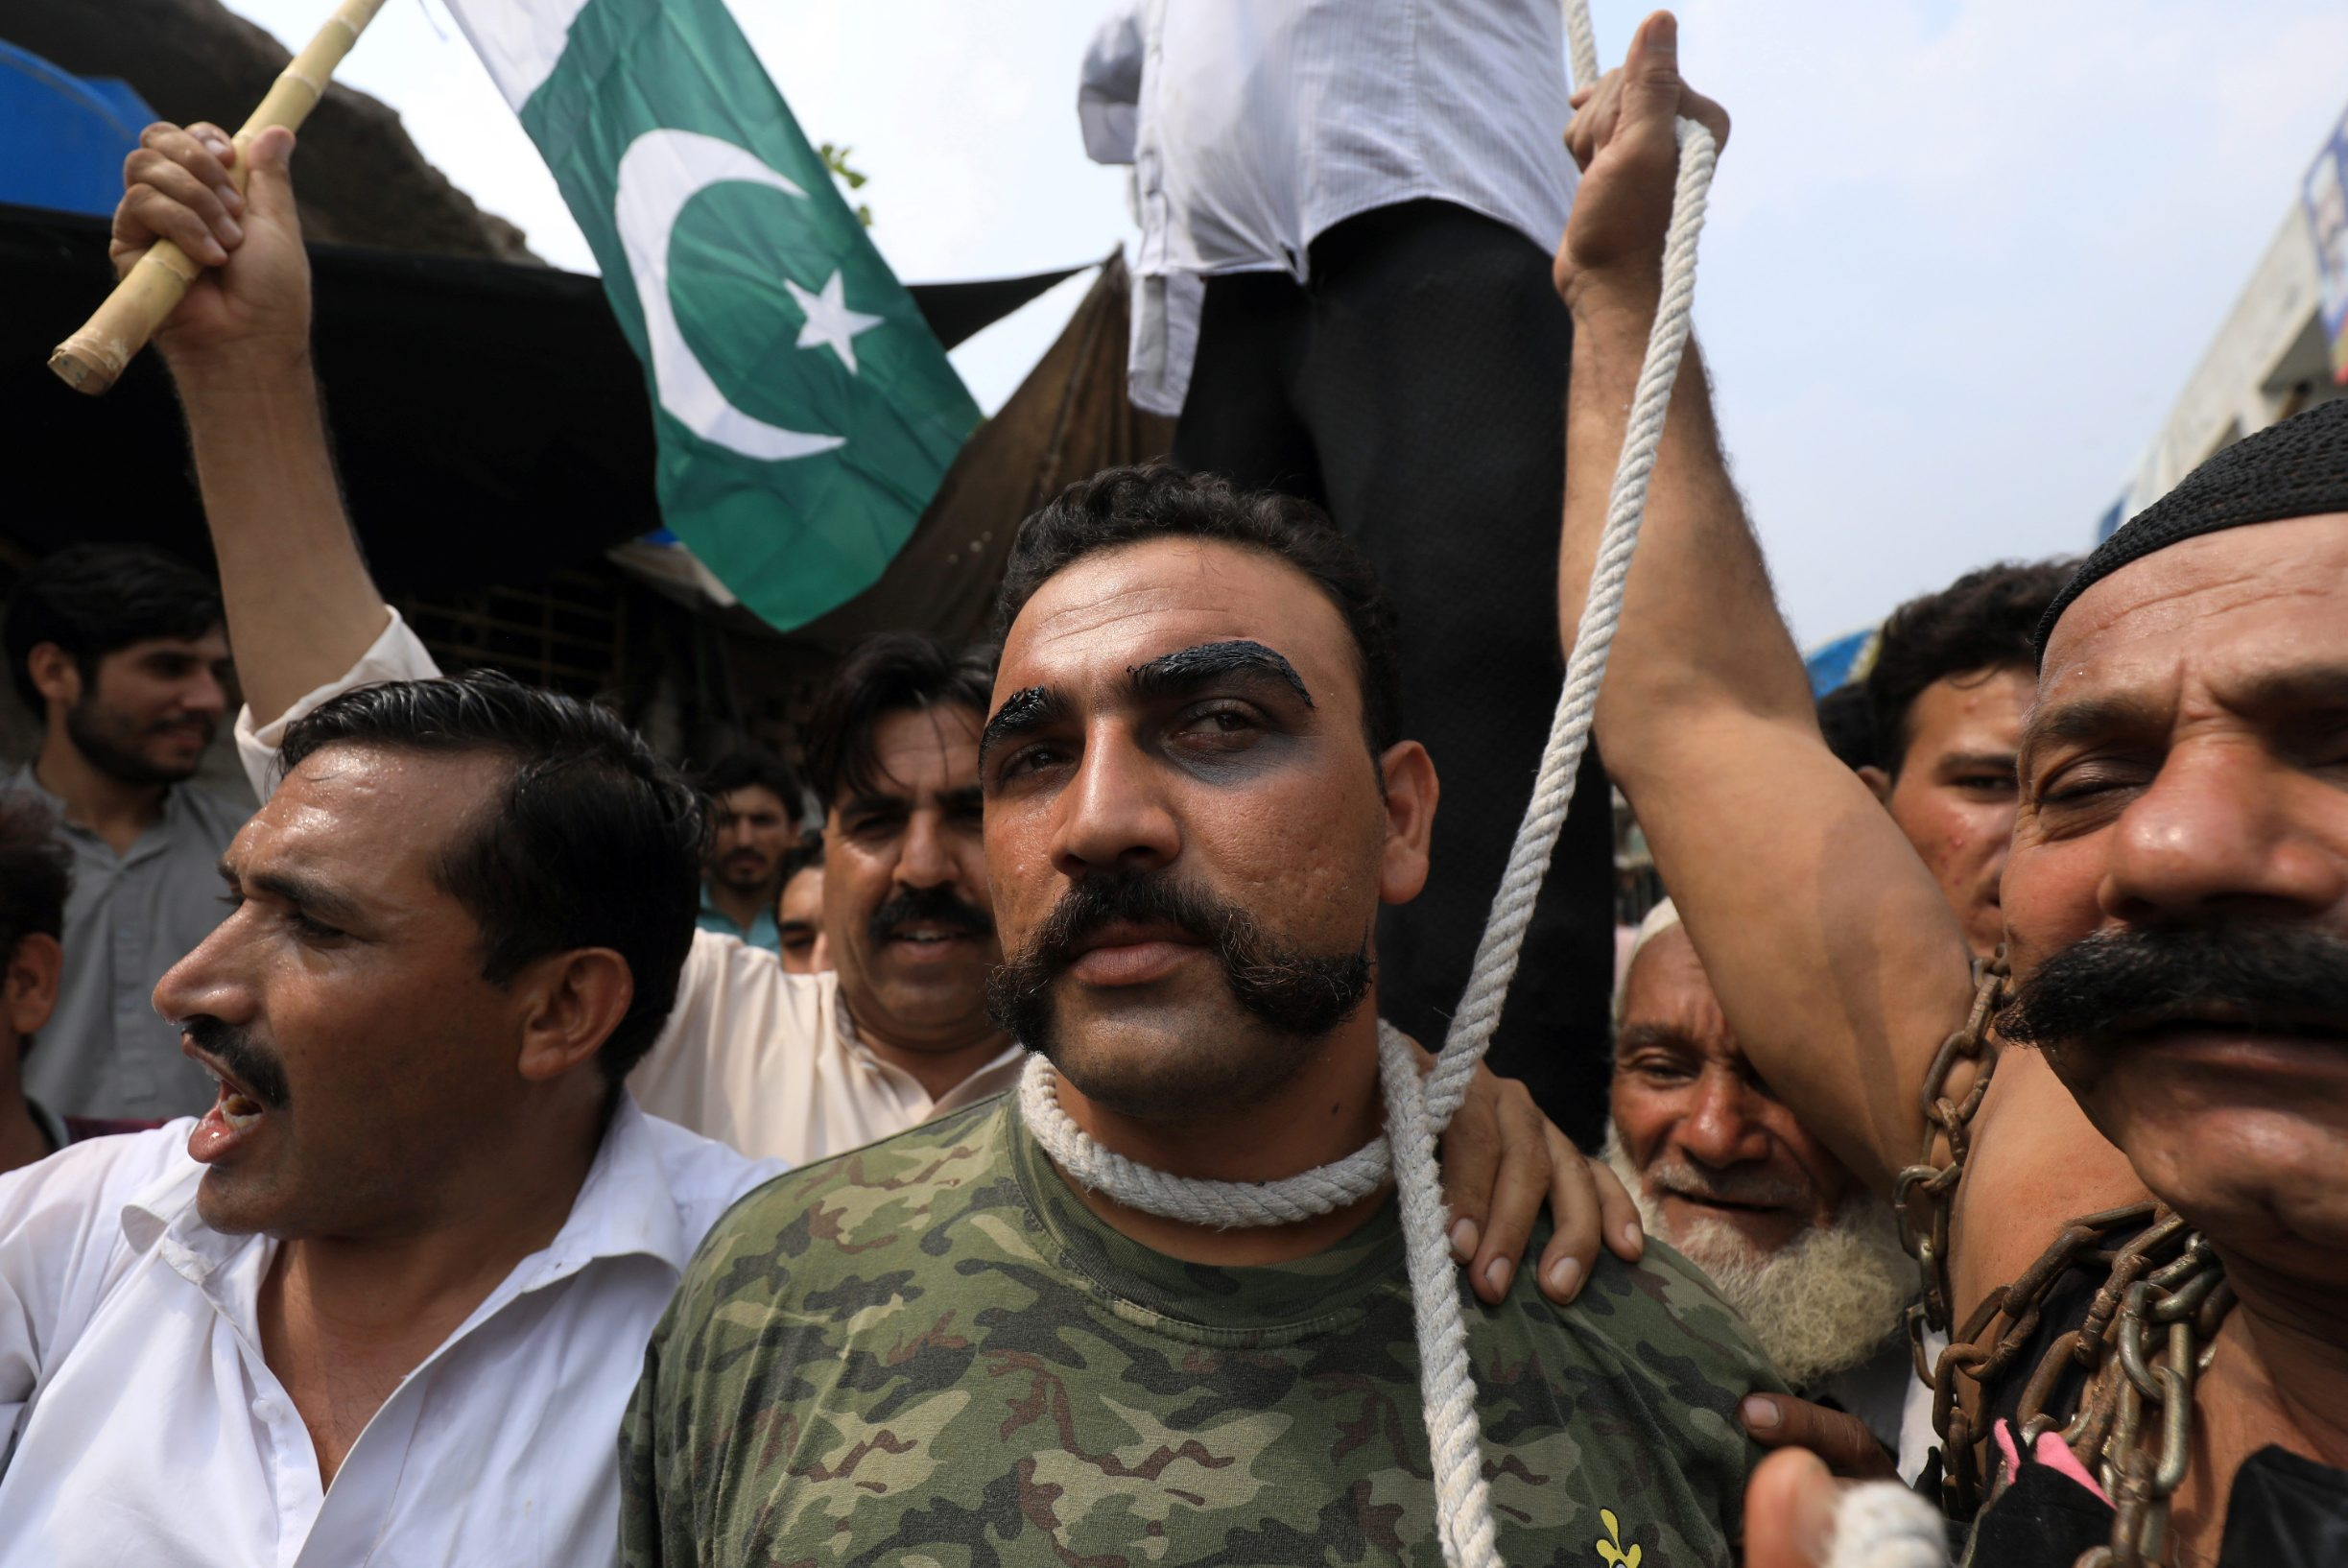 People stage a mock hanging of Indian Air Force pilot Abhinandan Varthaman, during a countrywide  'Kashmir Hour' demonstration to express solidarity with the people of Kashmir, observing a call by Prime Minister Imran Khan in Peshawar, Pakistan August 30, 2019. REUTERS/Fayaz Aziz